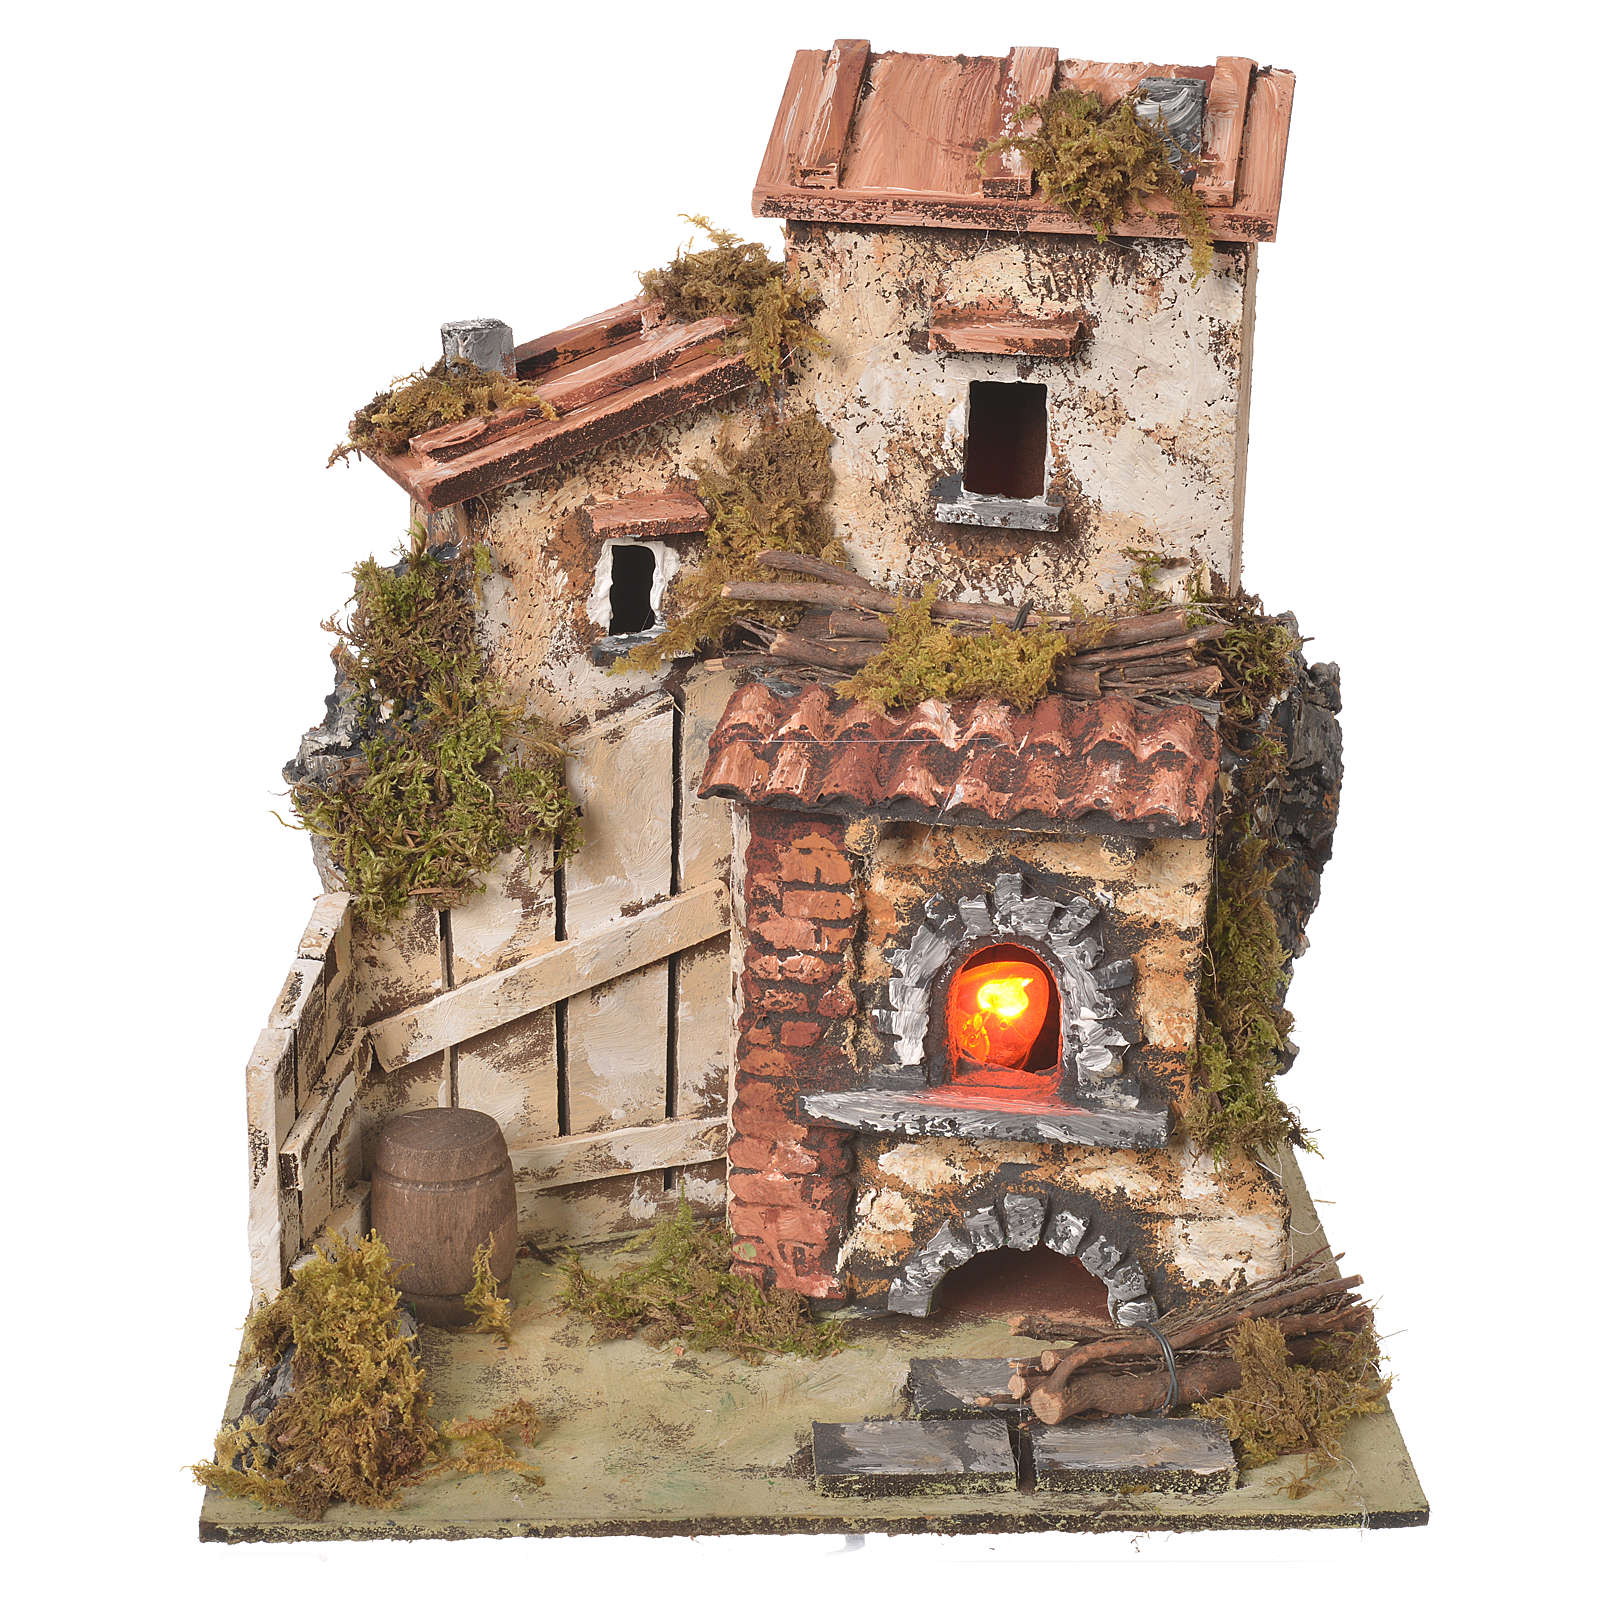 Farmhouse with flame effect oven for nativities 25.5x24x21cm 4